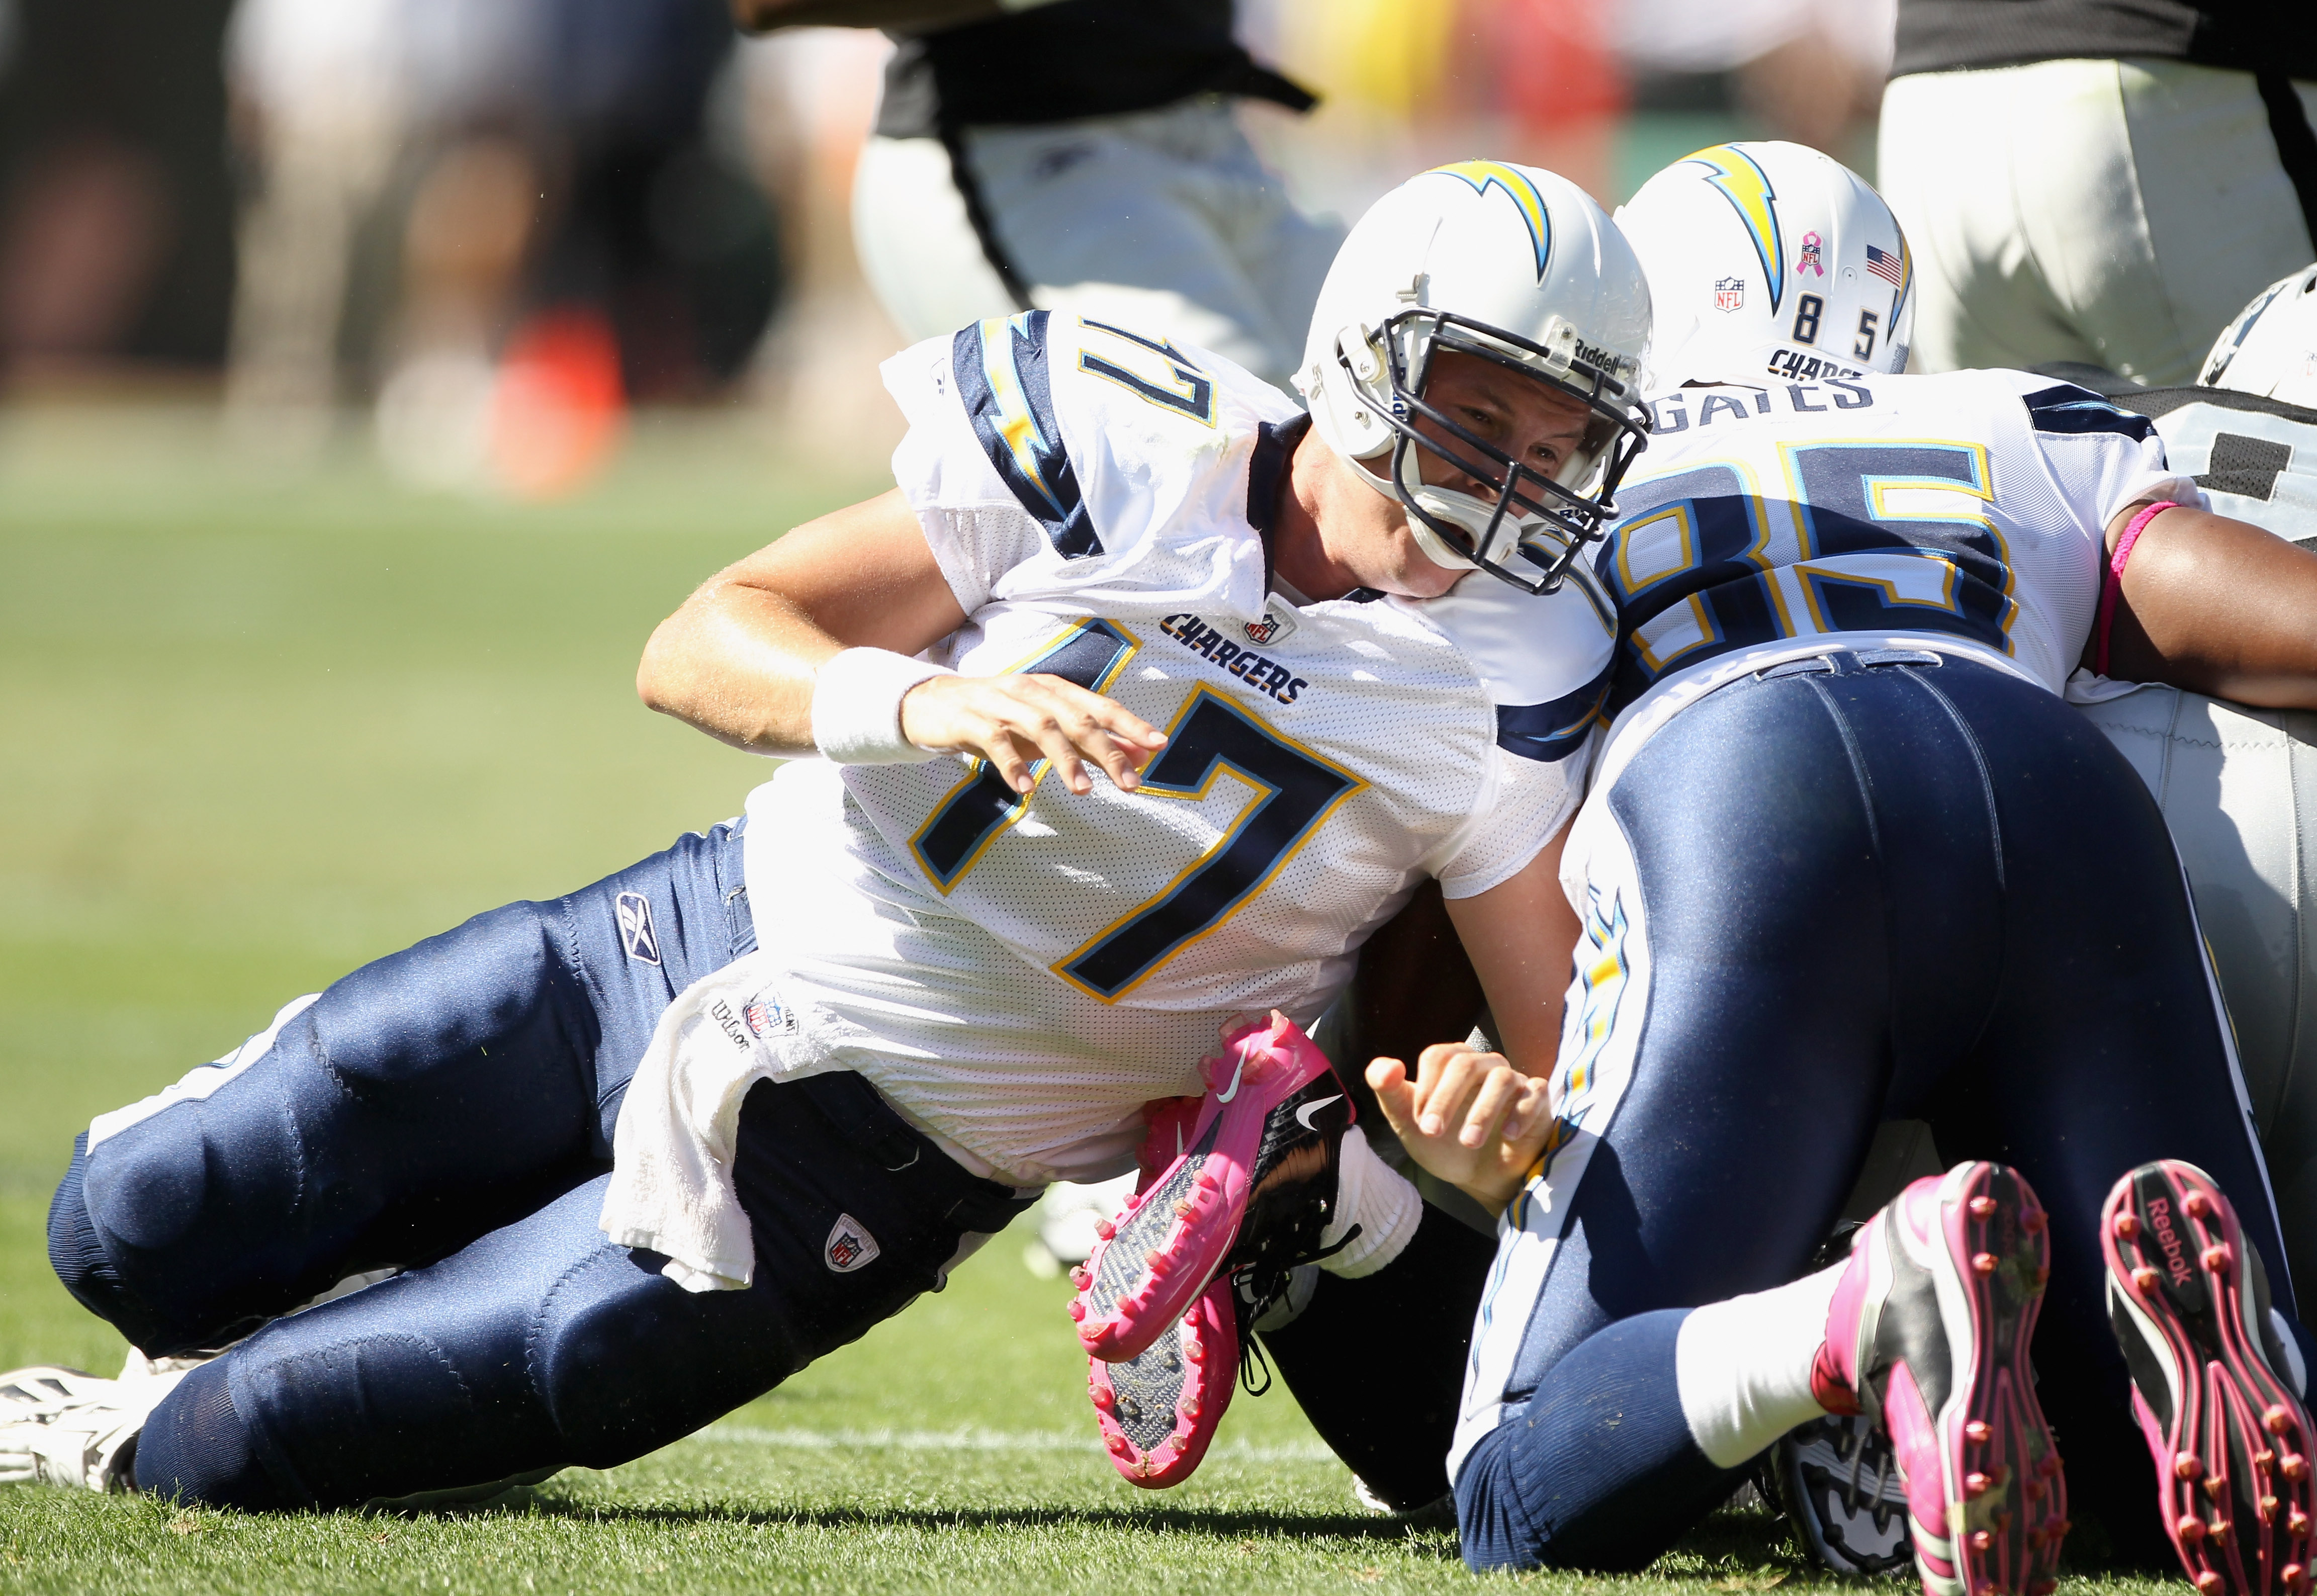 OAKLAND, CA - OCTOBER 10:  Philip Rivers #17 of the San Diego Chargers tries to help with a tackle after the Chargers fumbled the ball against the Oakland Raiders at Oakland-Alameda County Coliseum on October 10, 2010 in Oakland, California.  (Photo by Ez